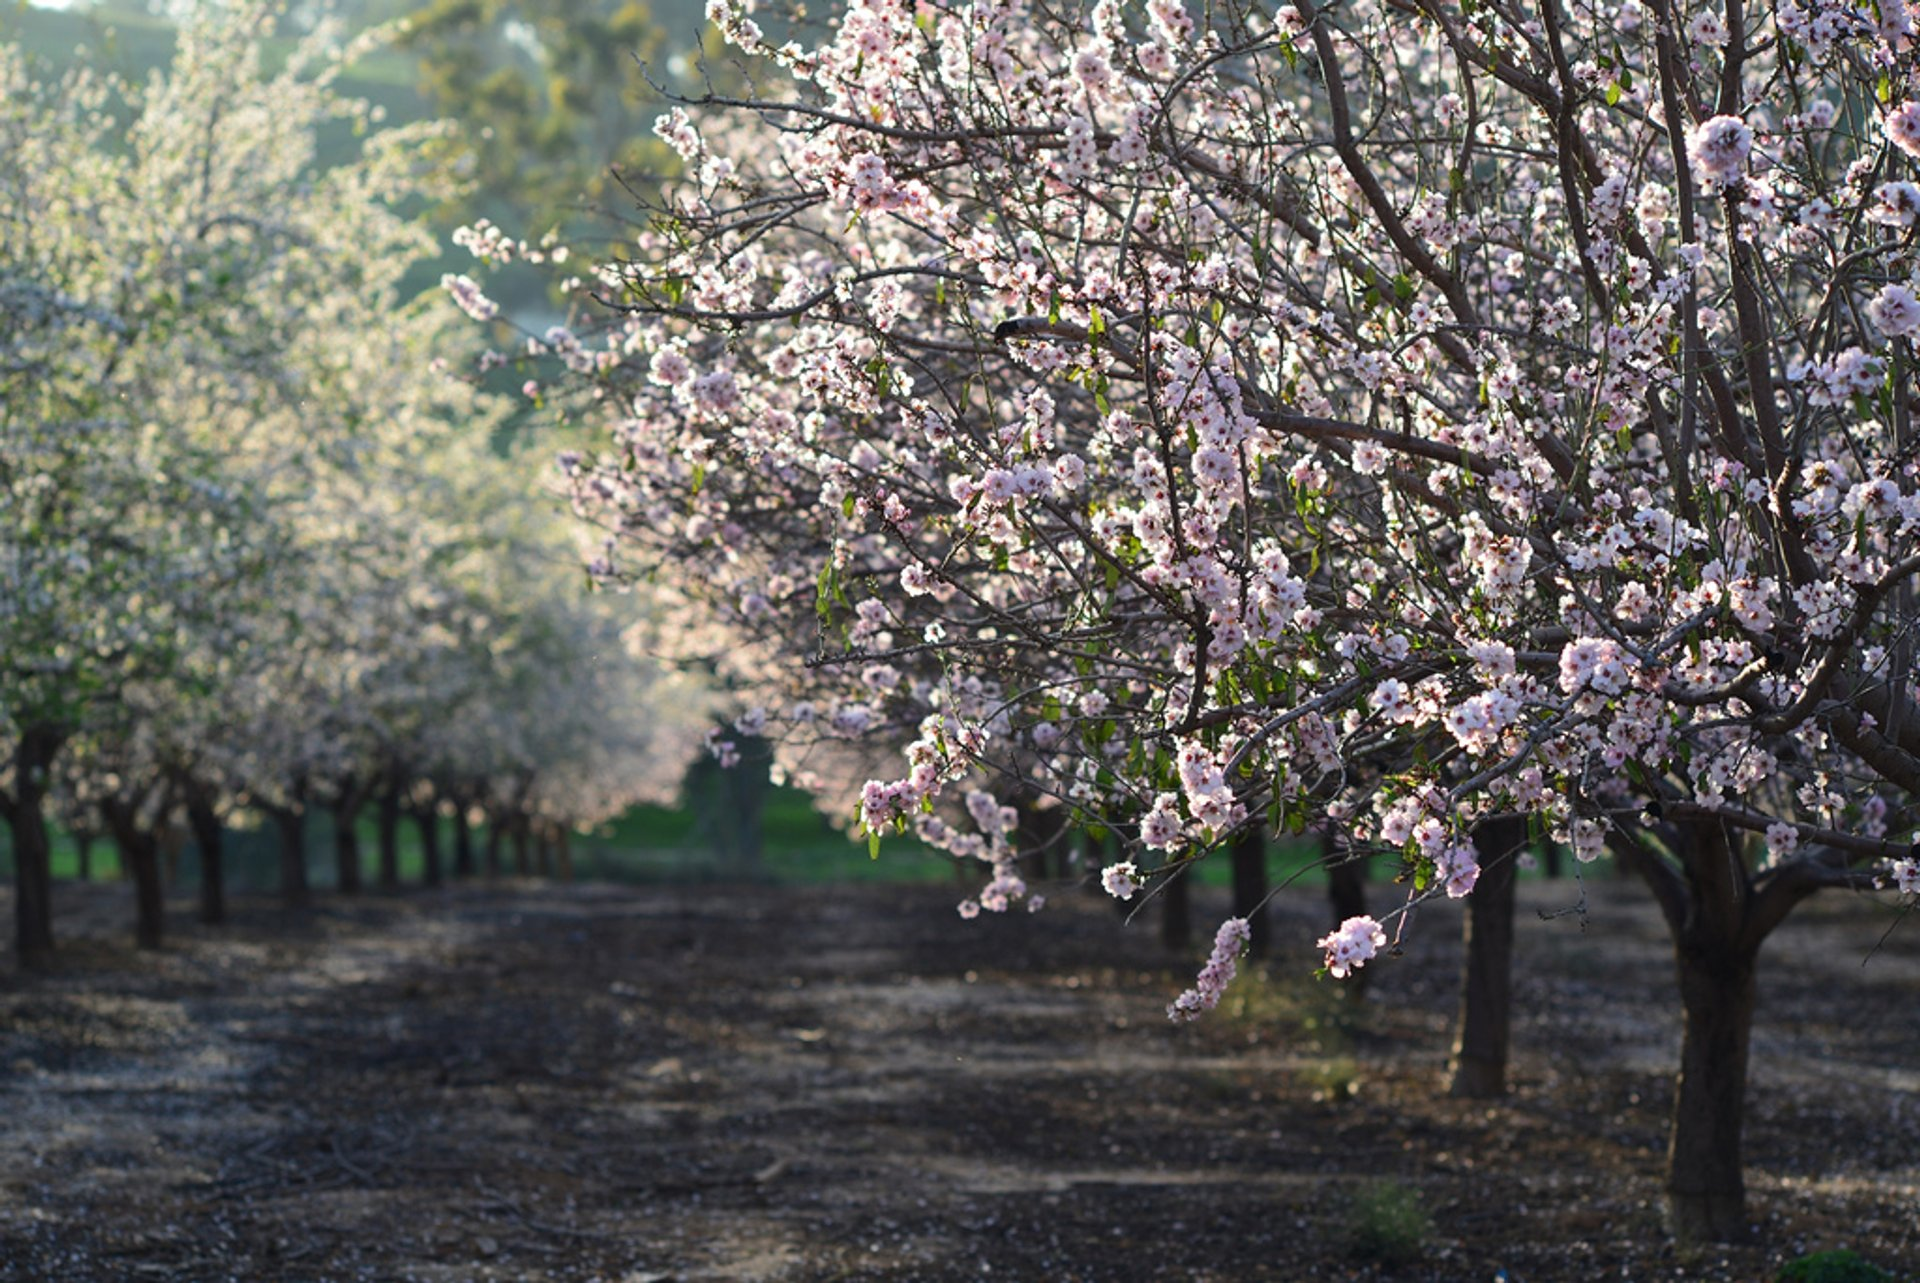 Almond Blossom in Israel - Best Season